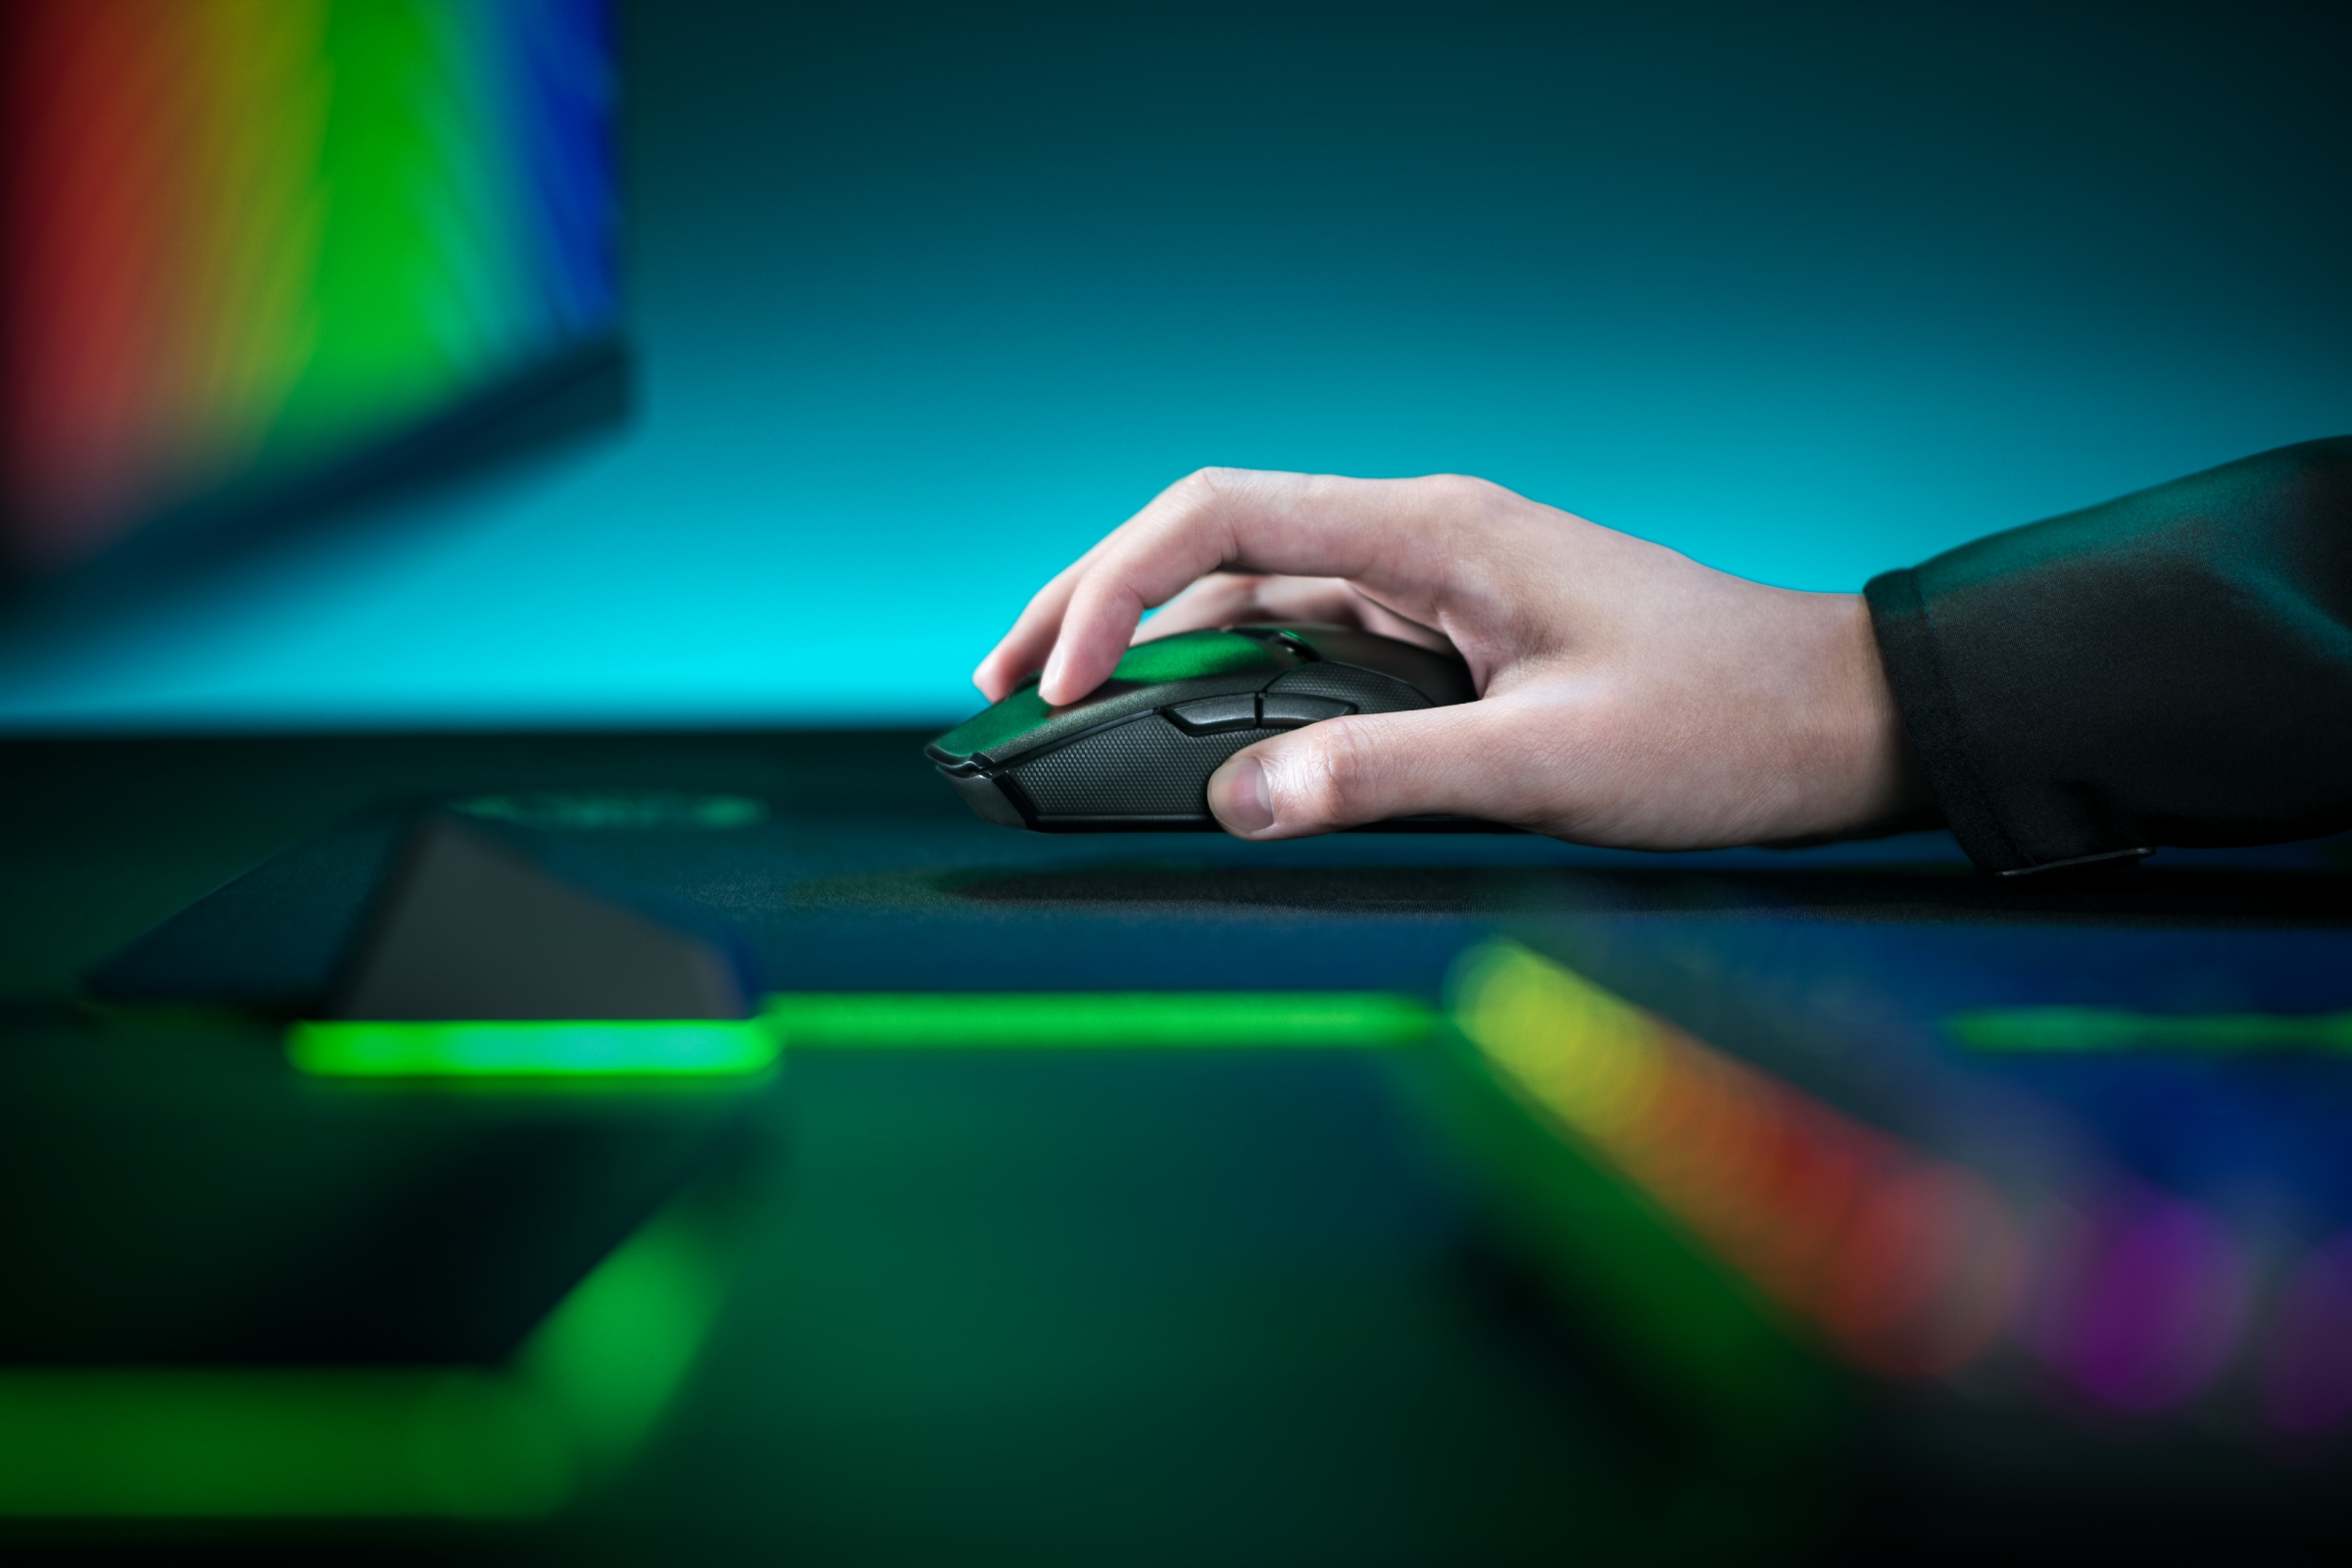 Razer's HyperSpeed to make wireless gaming mice faster than ever